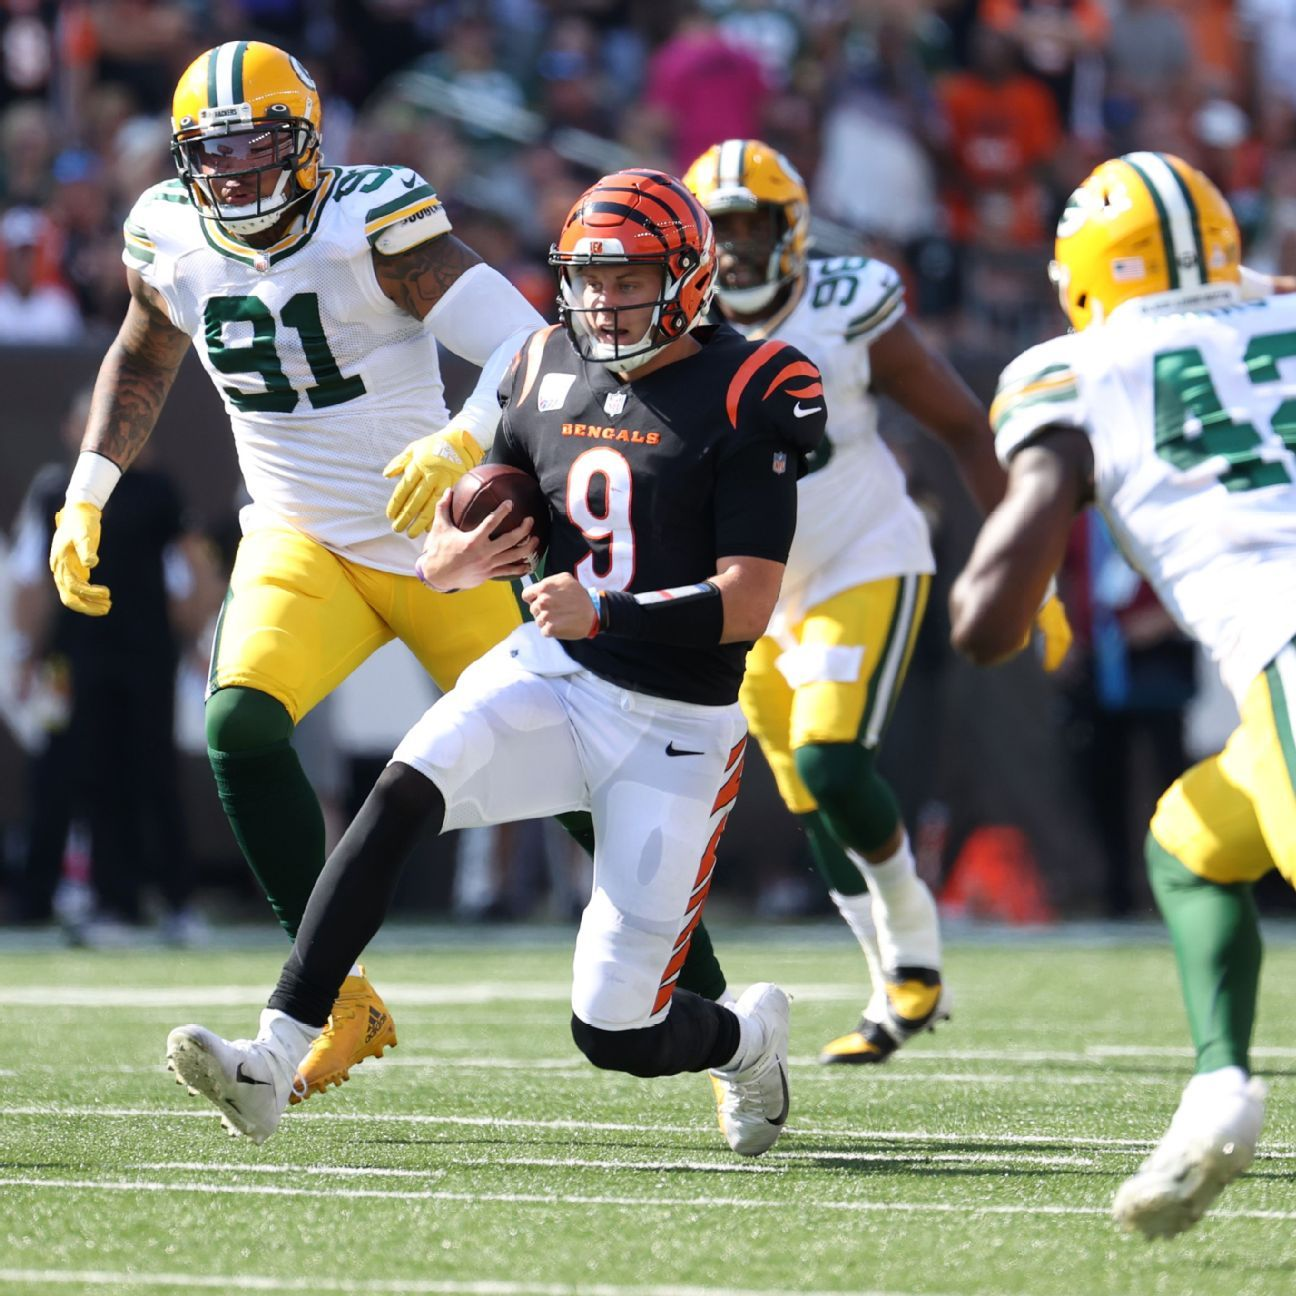 <div>Bengals QB Burrow on 'voice rest' after injury</div>